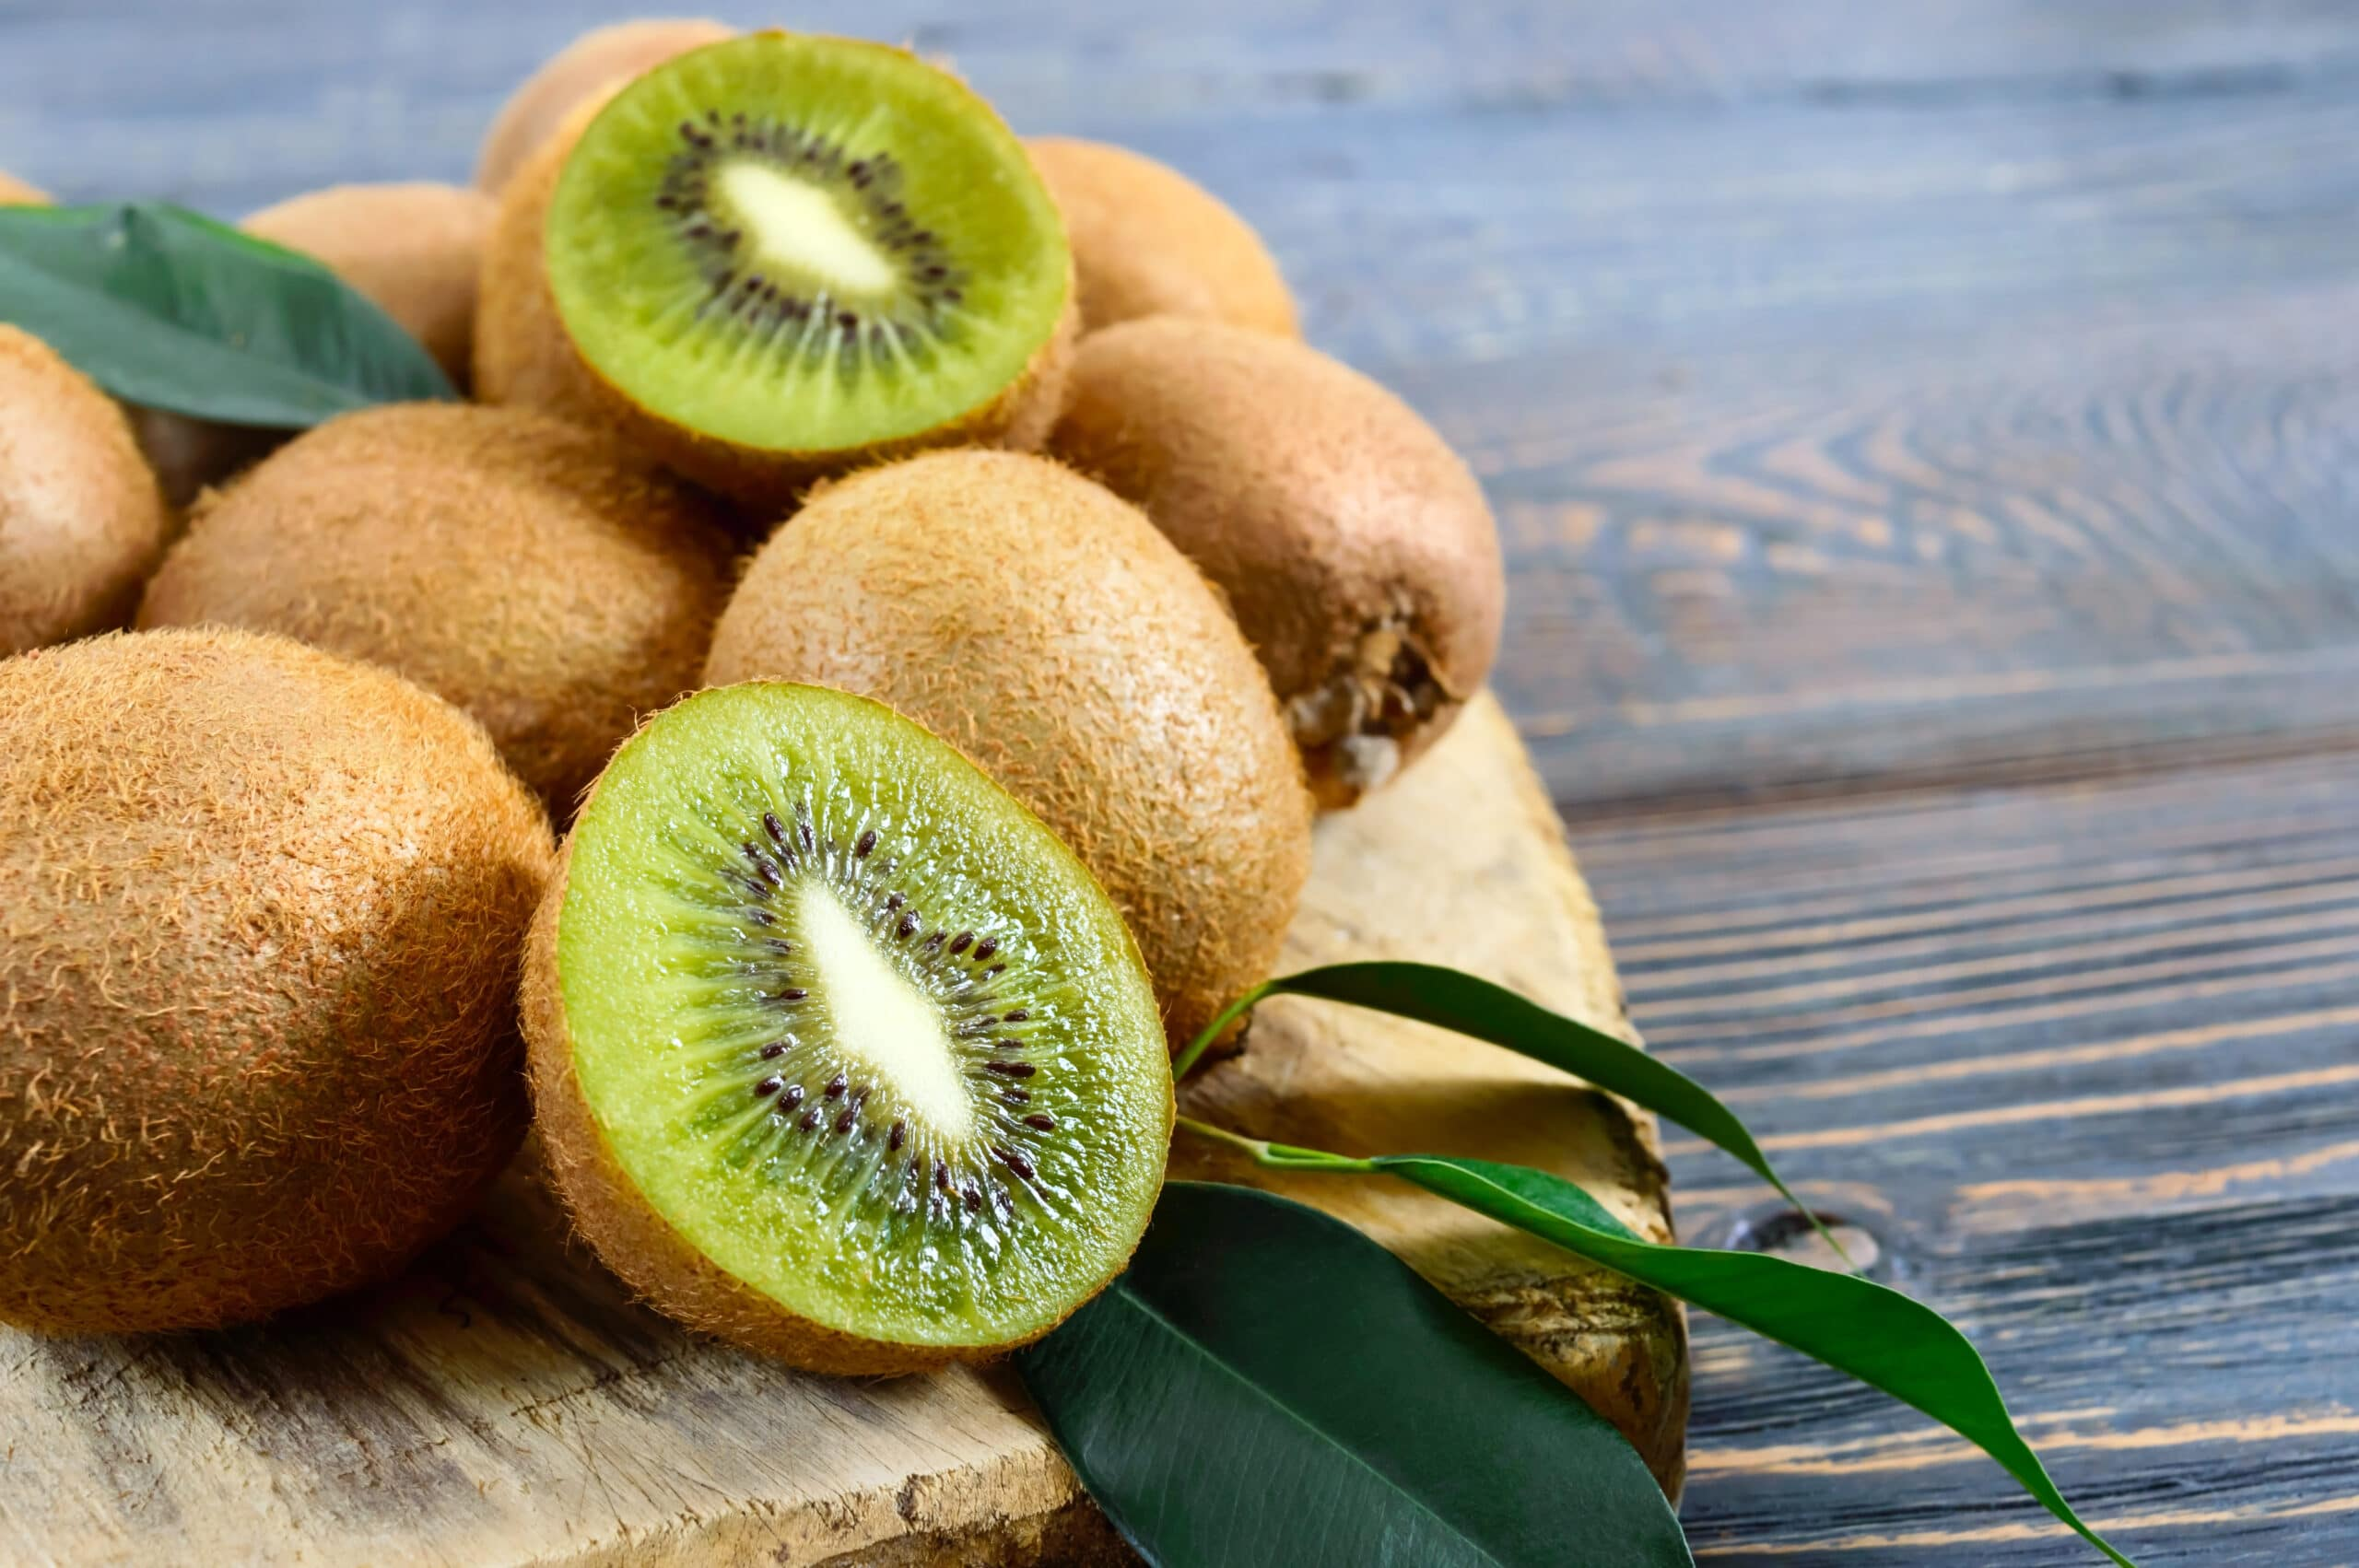 Ripe fruits of kiwi whole and halves are scattered on a cutting board with an old knife on a wooden table.